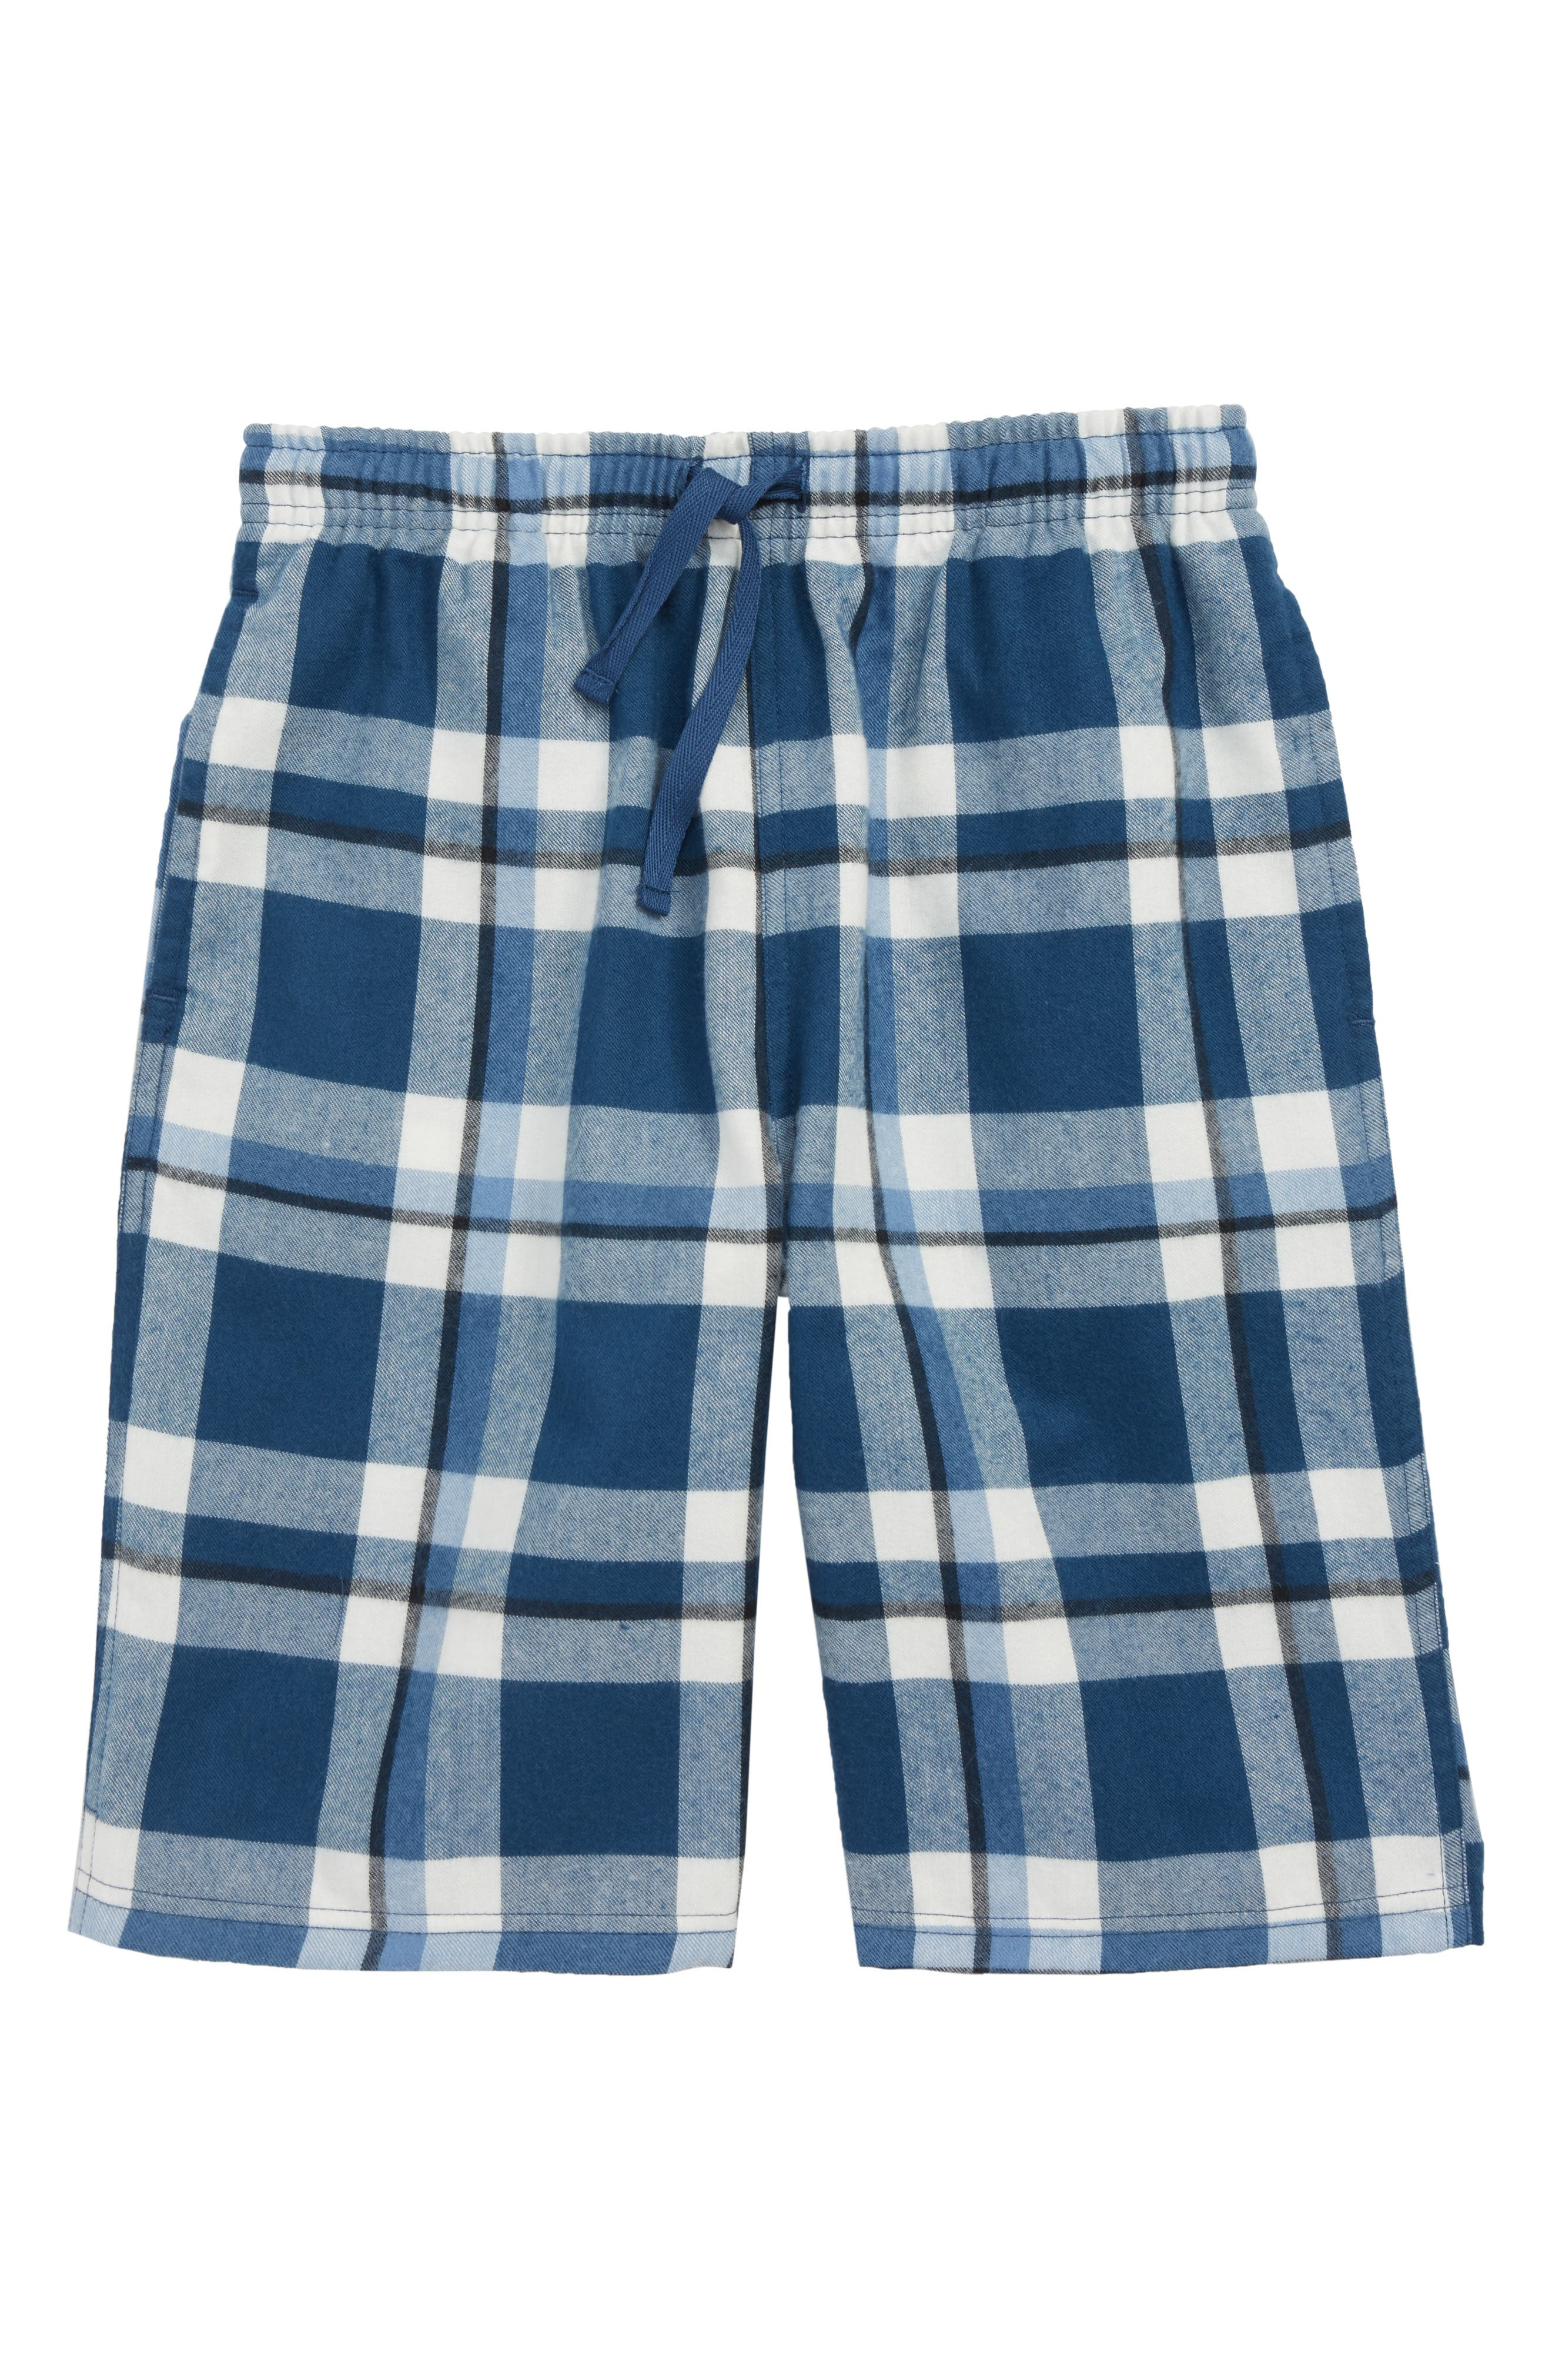 TUCKER + TATE Plaid Flannel Sleep Shorts, Main, color, 420